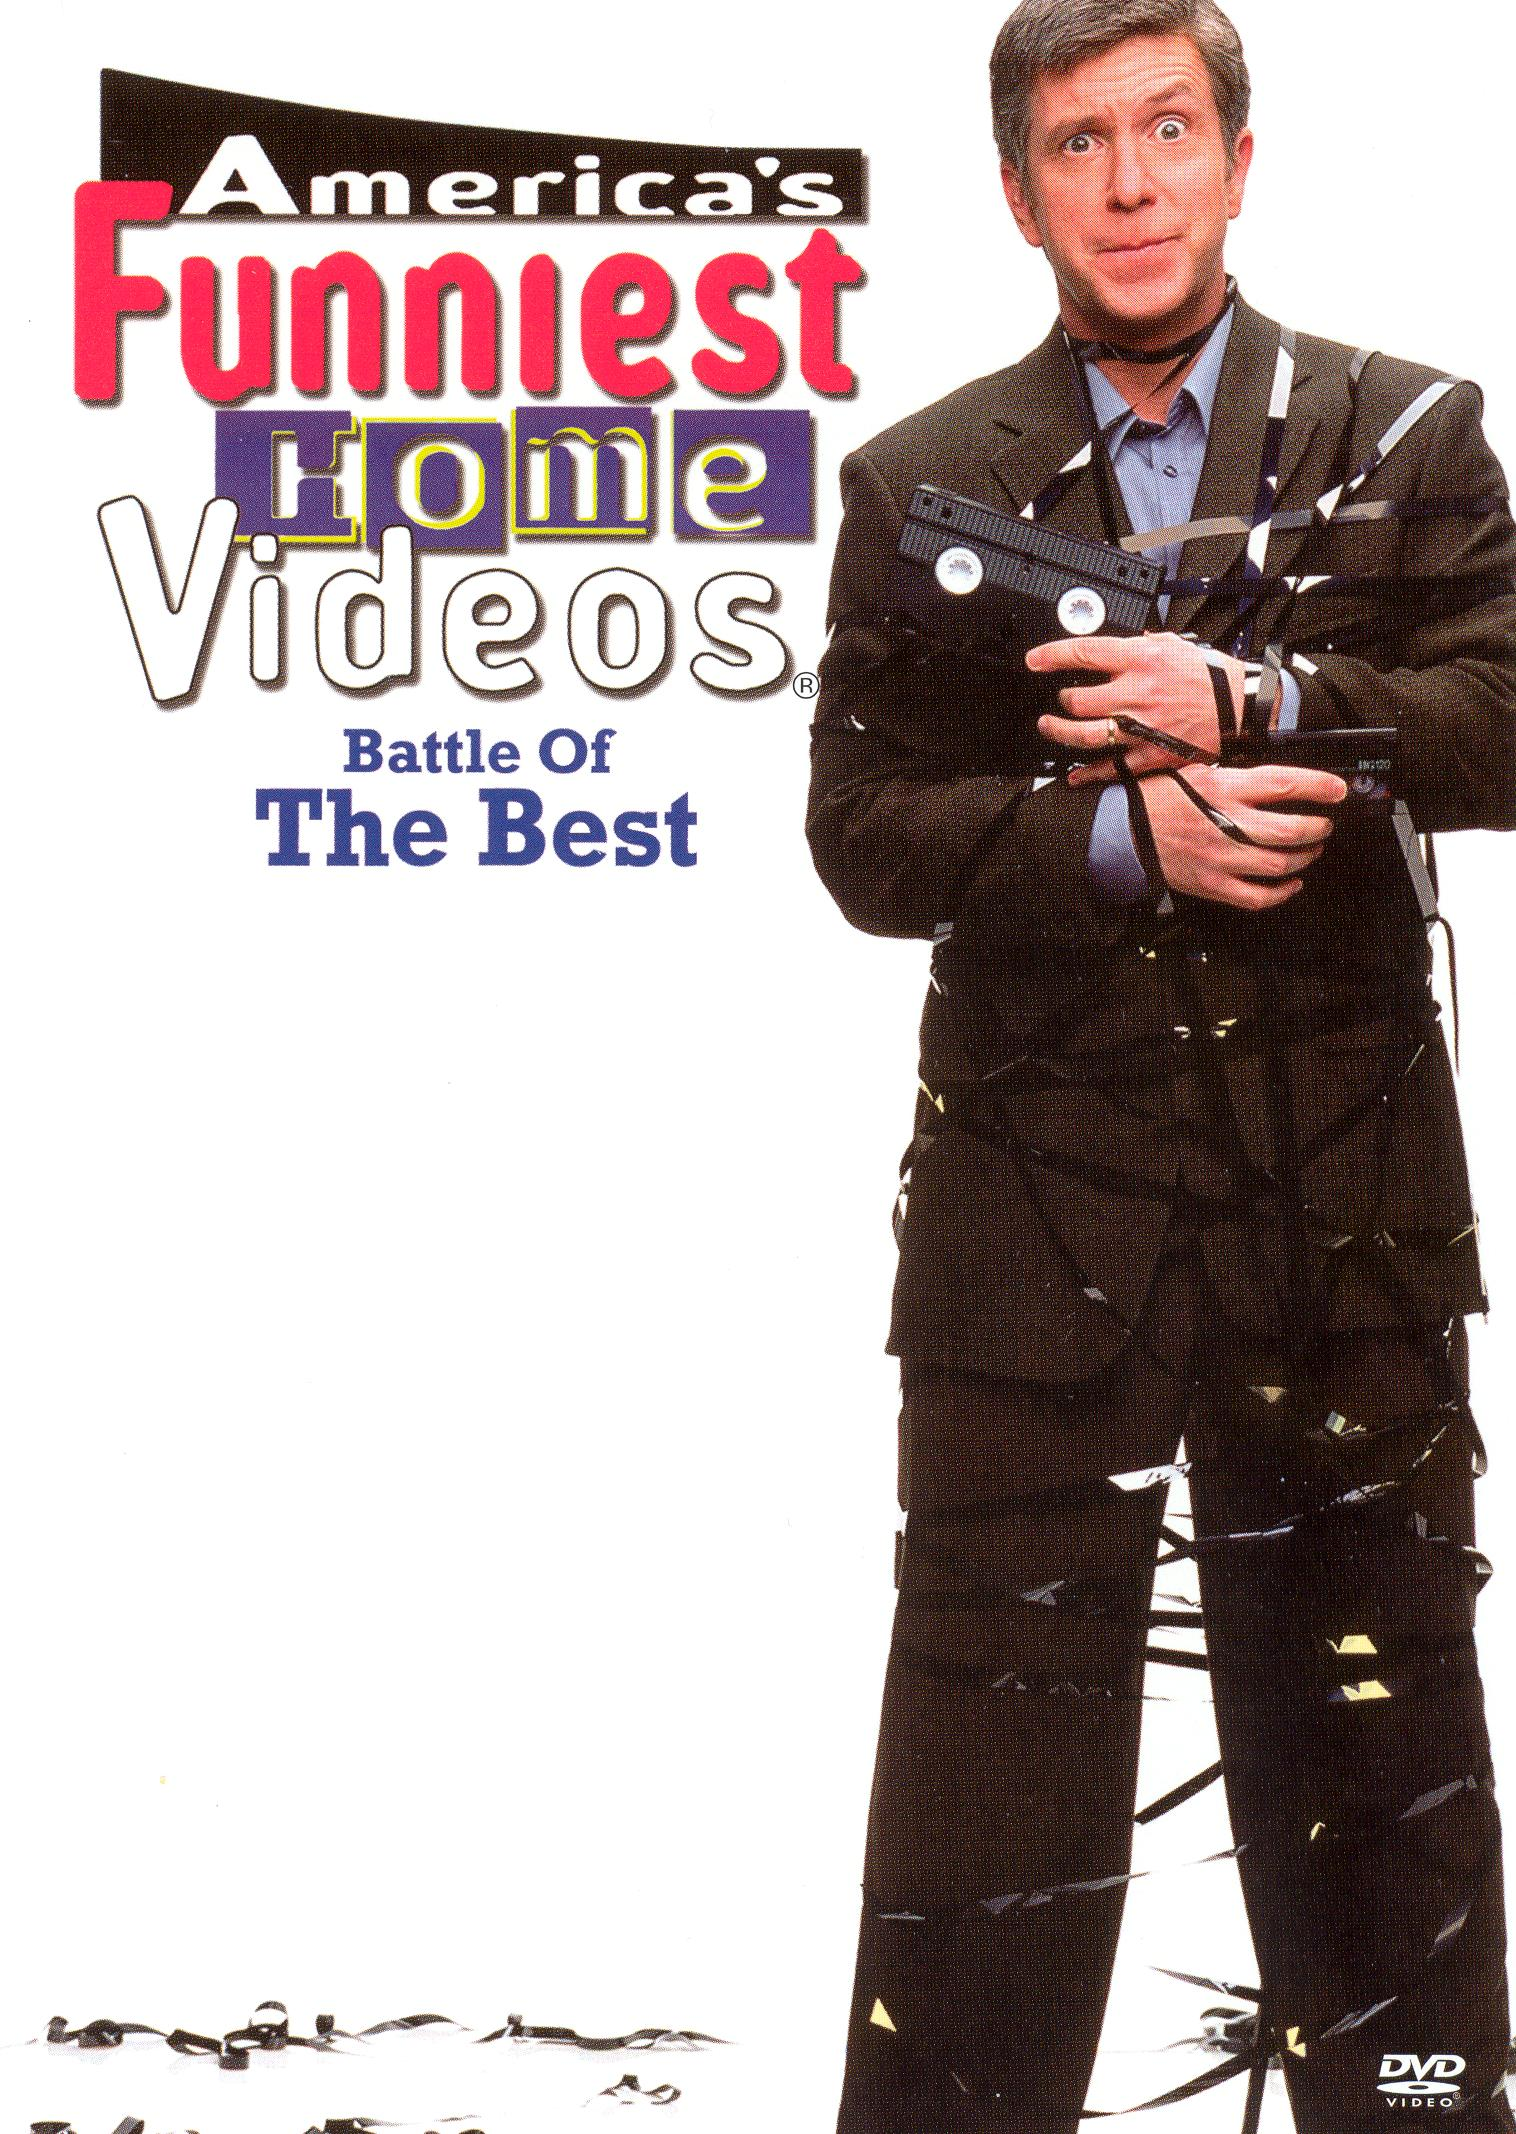 America's Funniest Home Videos: Battle of the Best